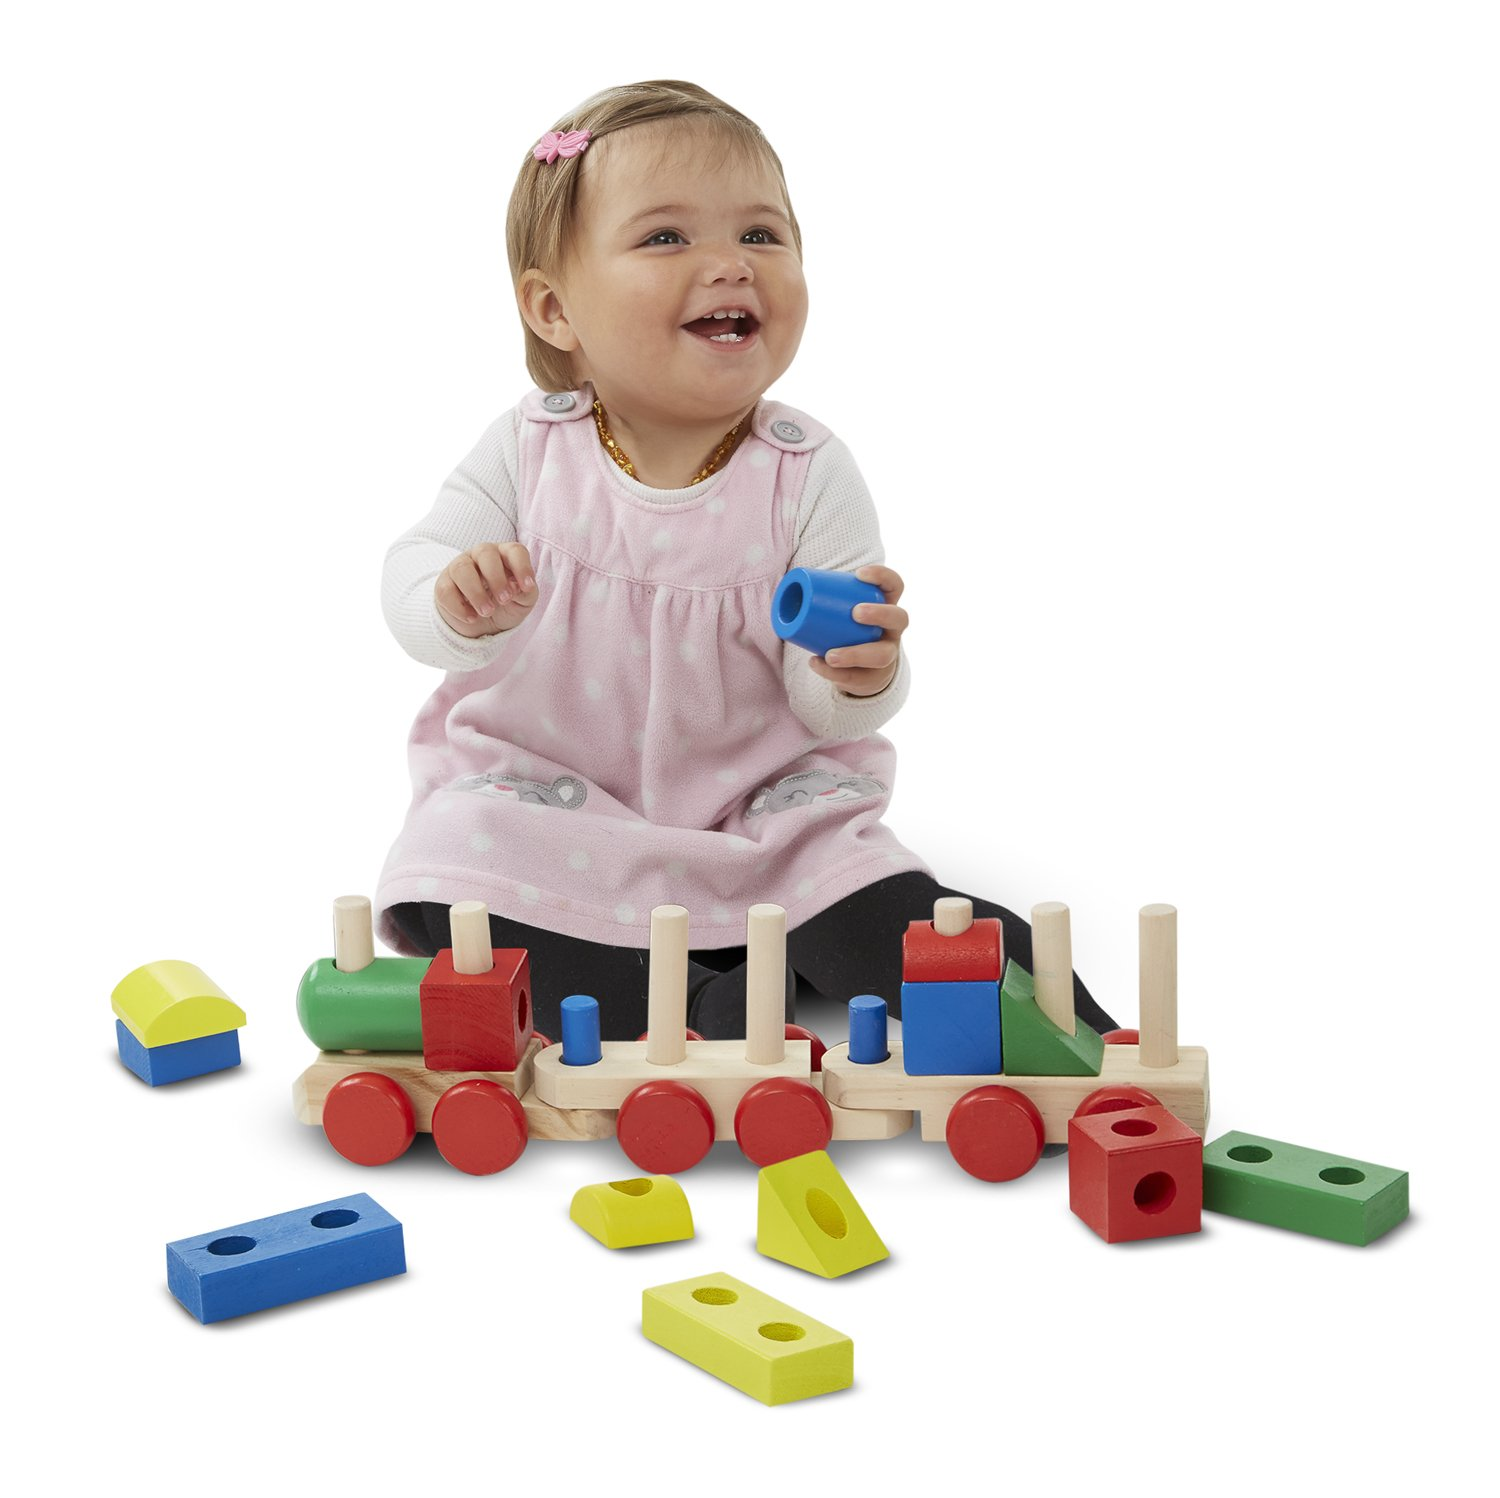 Melissa & Doug Stacking Train Classic Wooden Toddler Toy 18 pcs